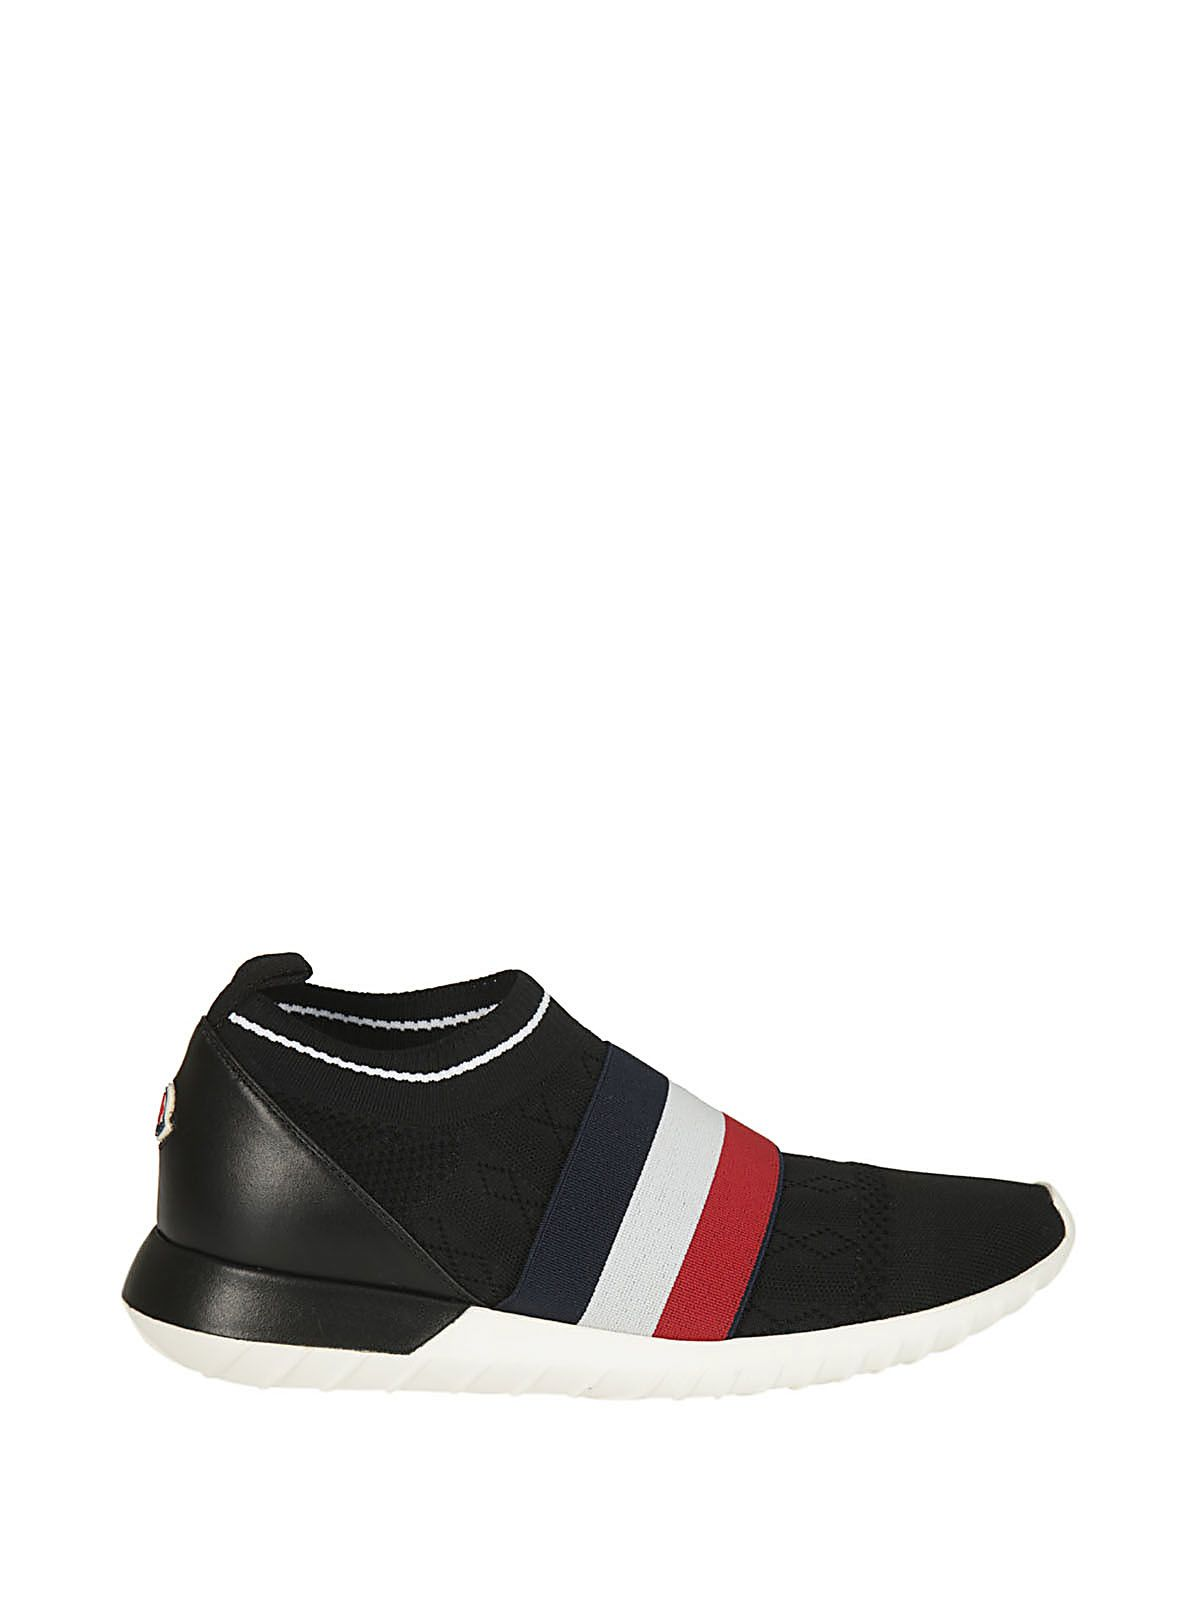 logo slip-on sneakers - Black Moncler xqxm1